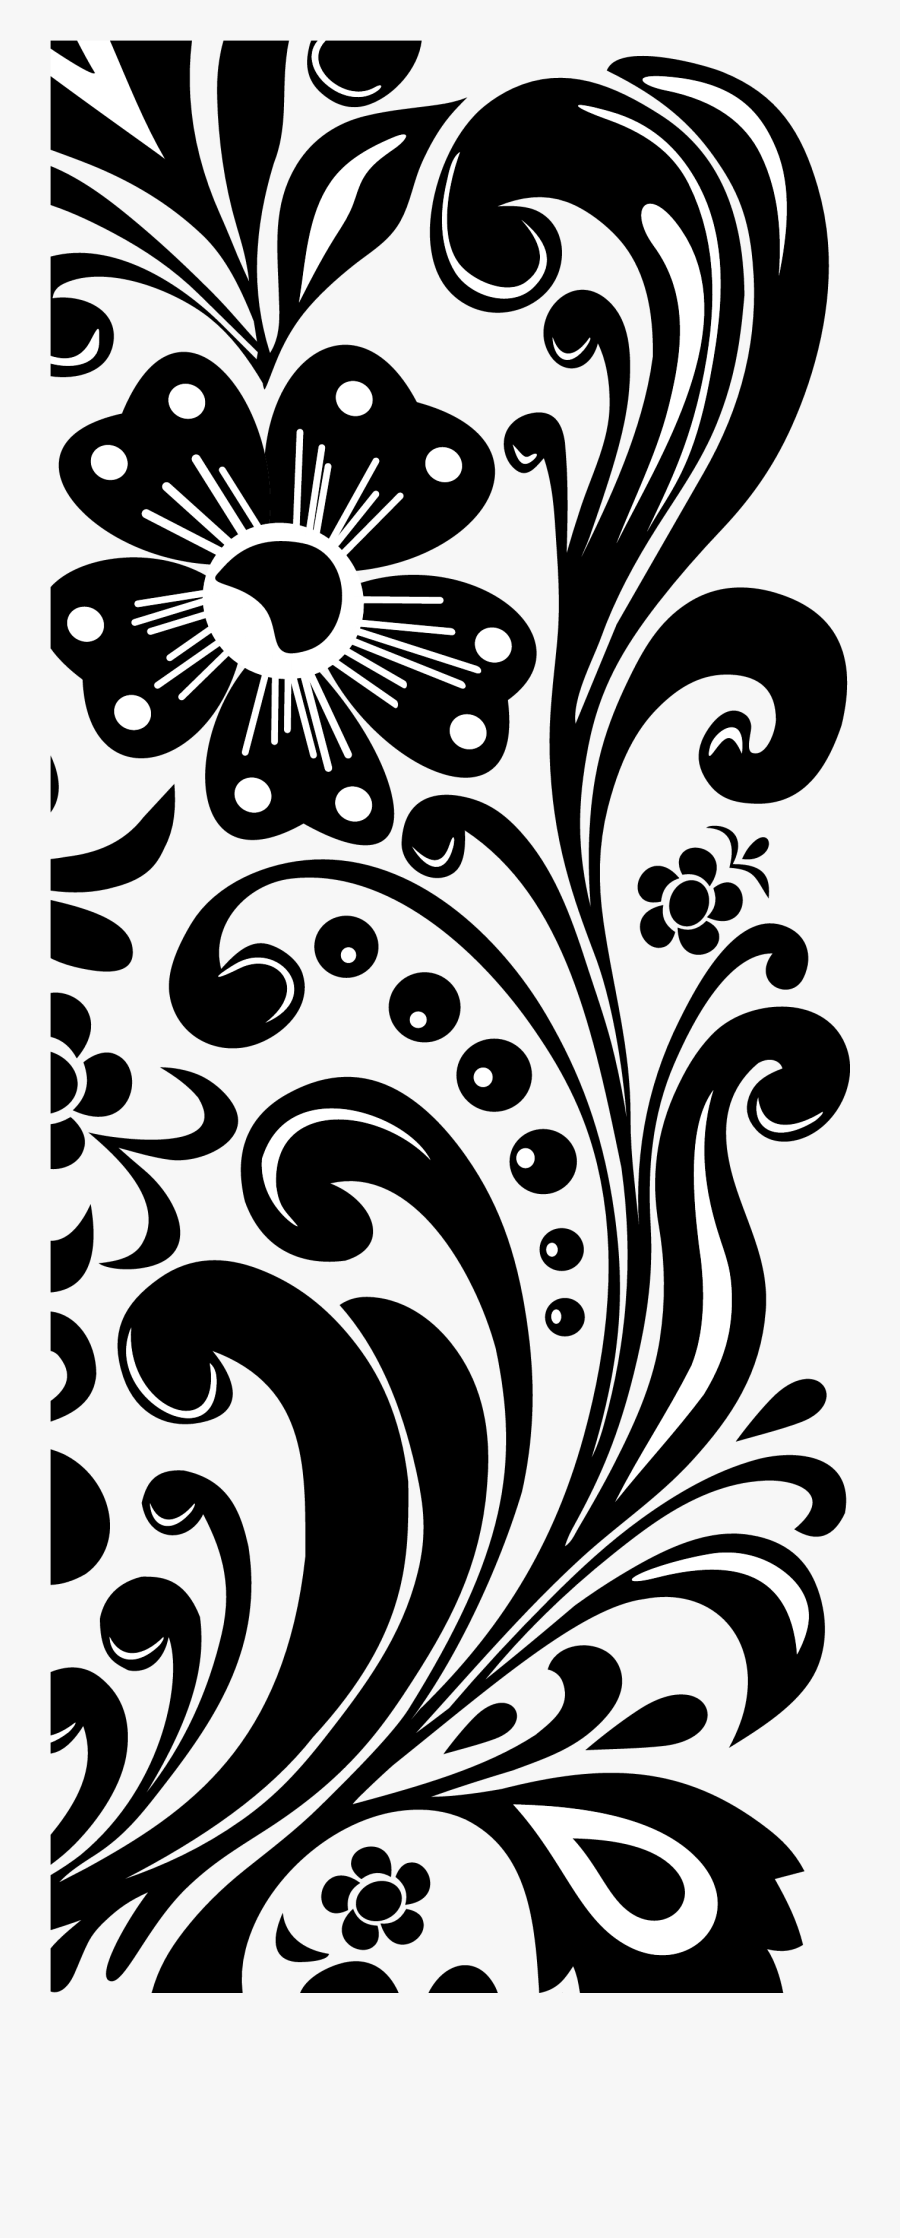 Vector Black And White Download Flower Border Clipart Blank Wedding Invitation Templates Black And White Free Transparent Clipart Clipartkey